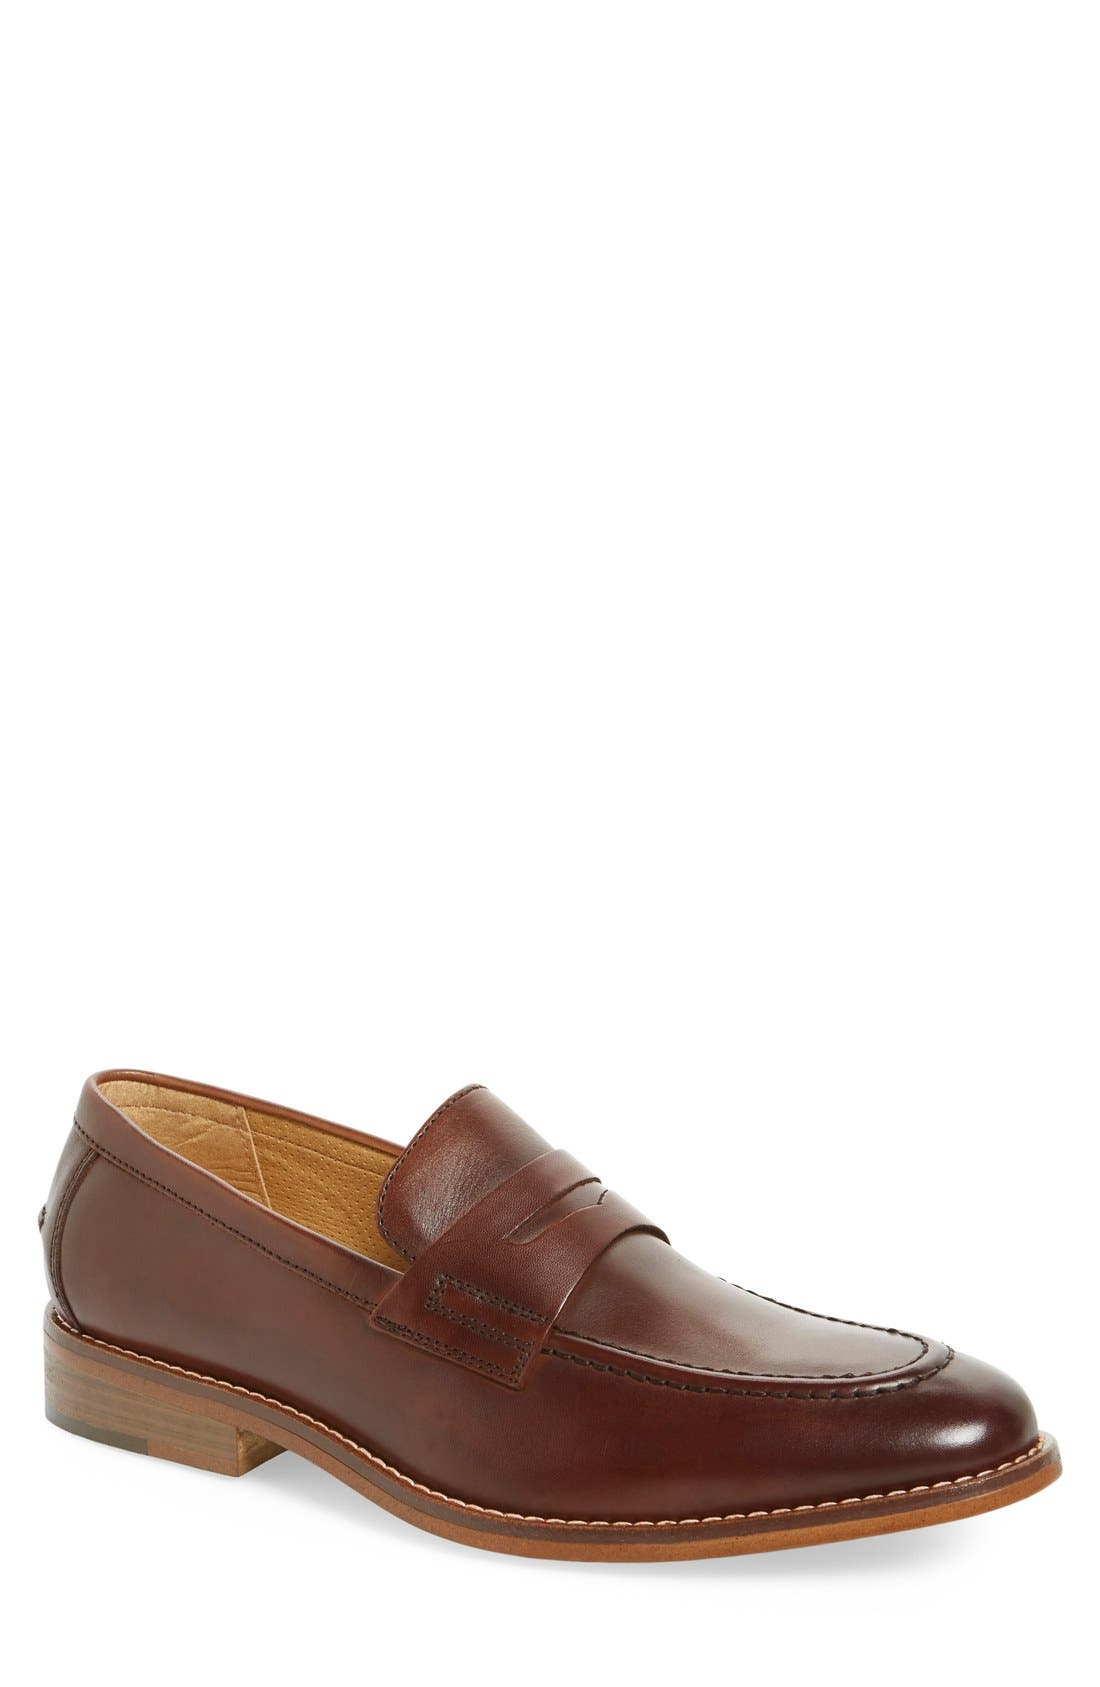 G.H. Bass & Co. 'Conner' Penny Loafer (Men)